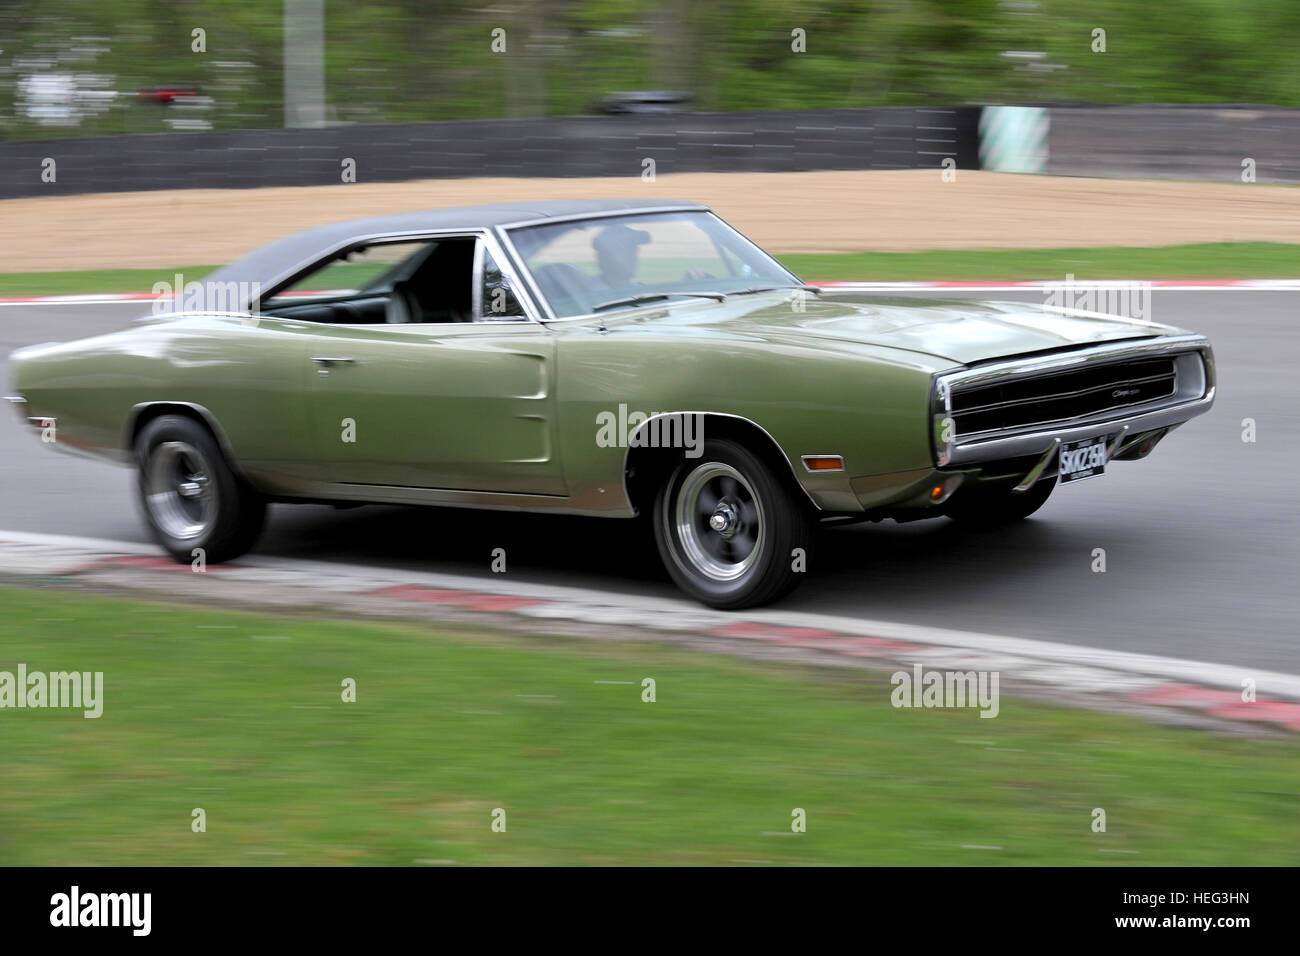 1970 Dodge Charger 500 Classic American Muscle Car Stock Photo